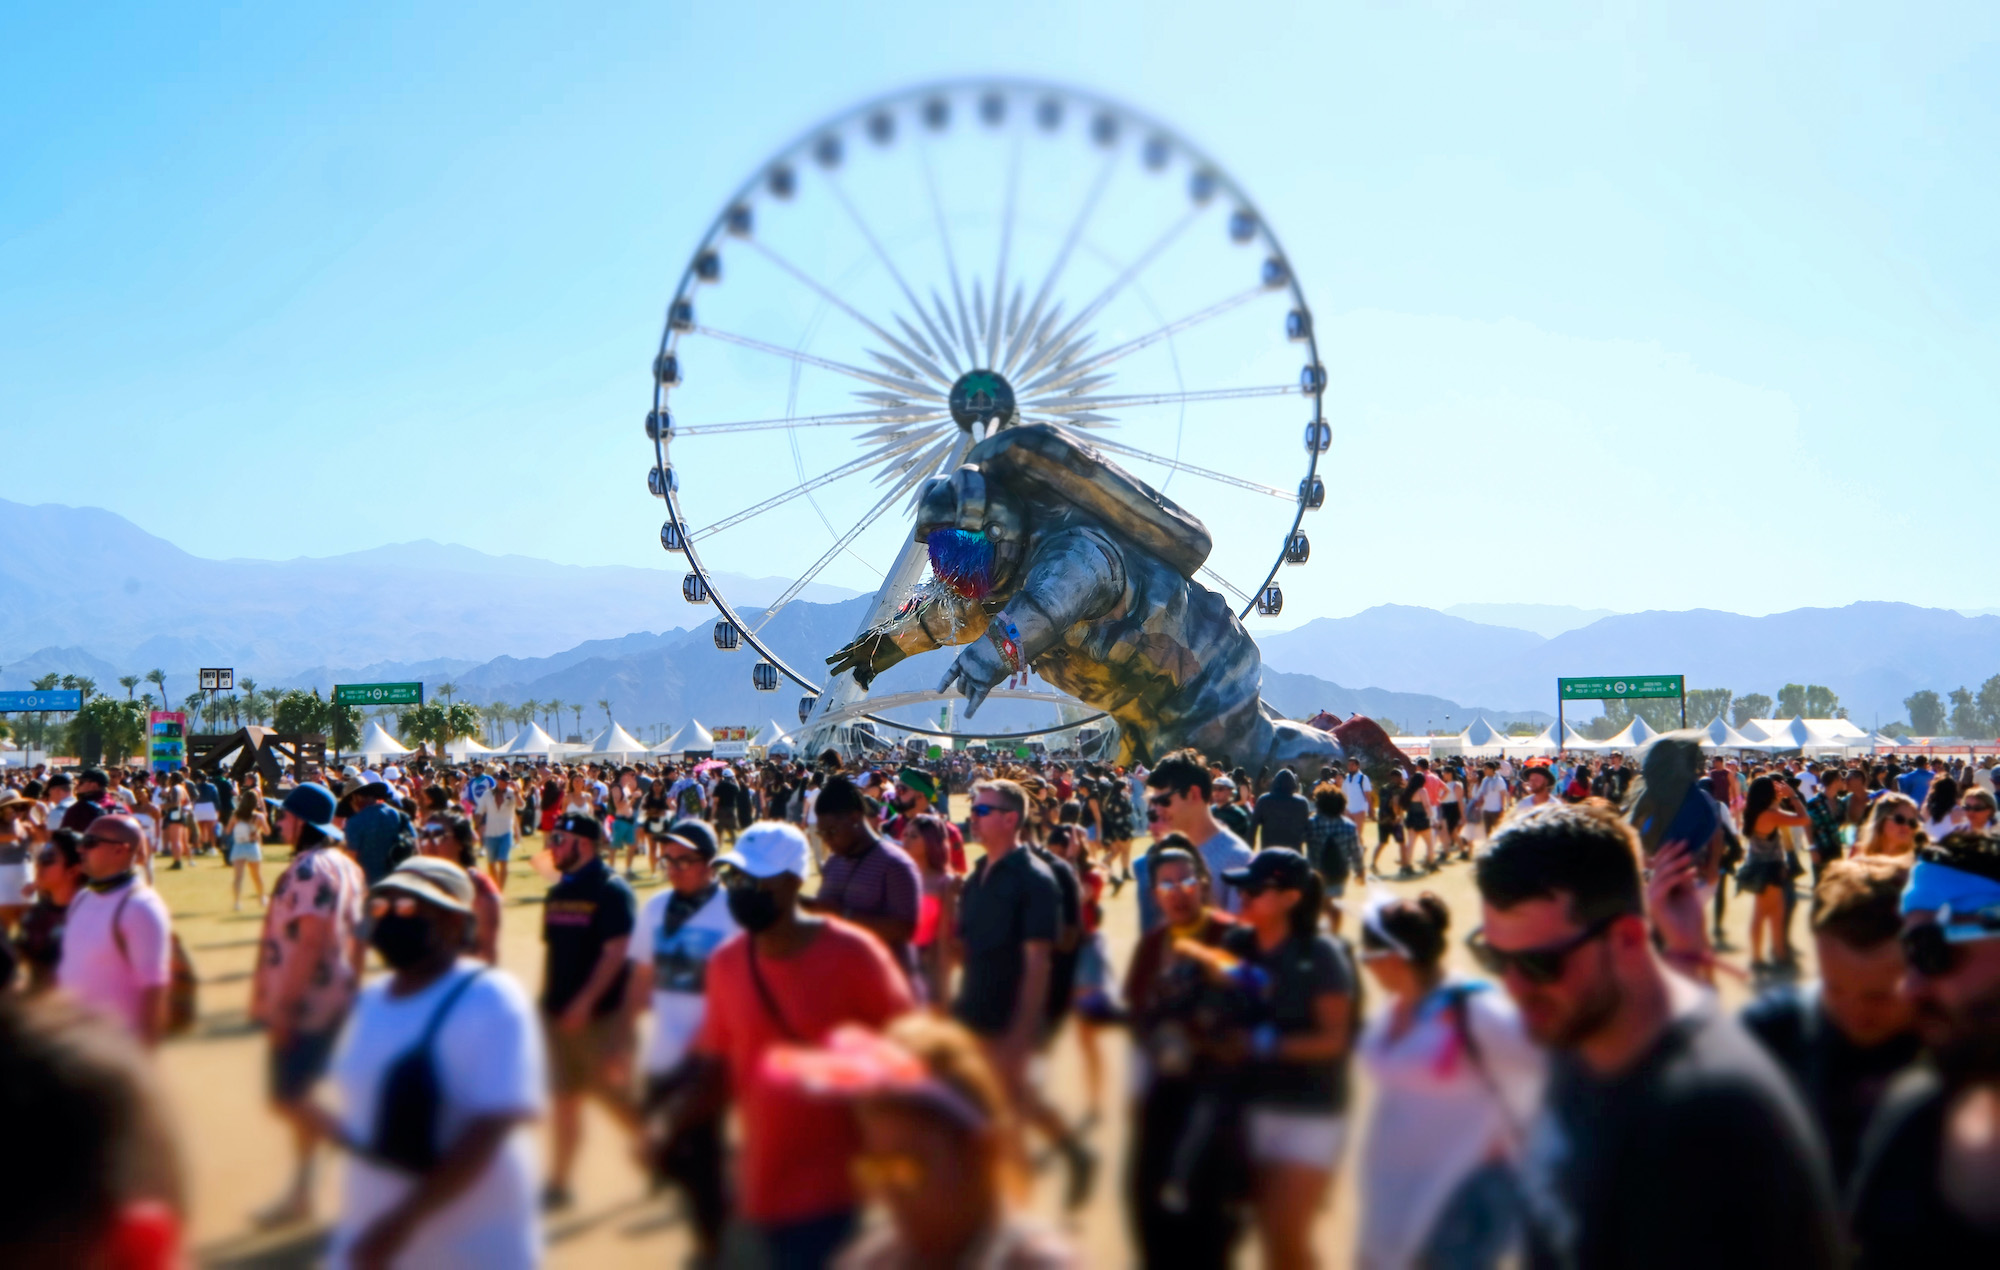 A new Coachella documentary is on the way